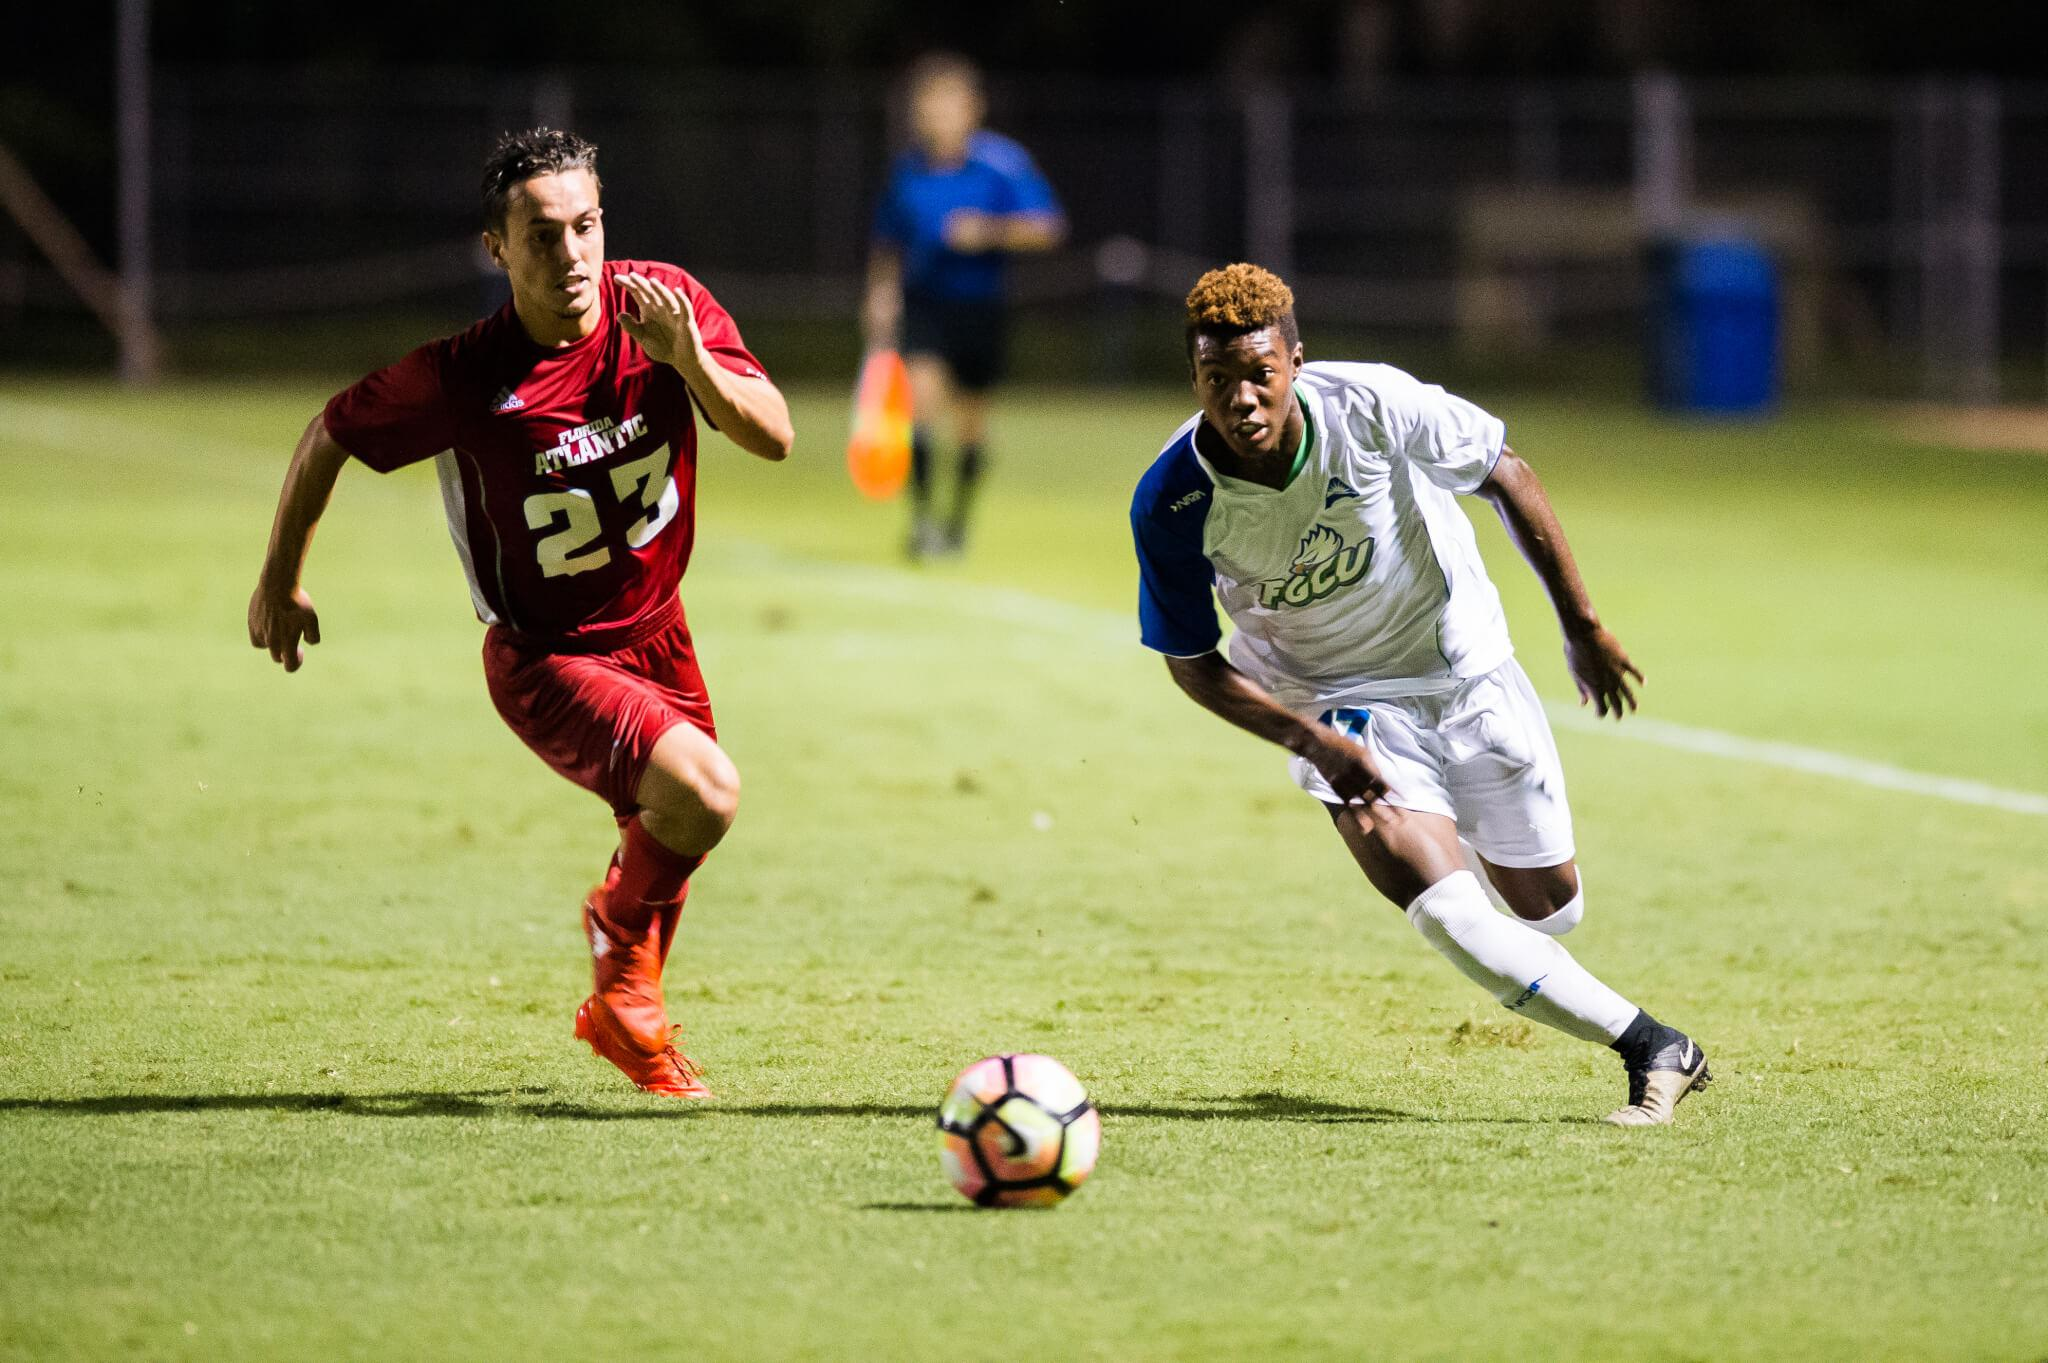 No. 12 men's soccer maintains eight game win-streak with 4-1 victory over FIU